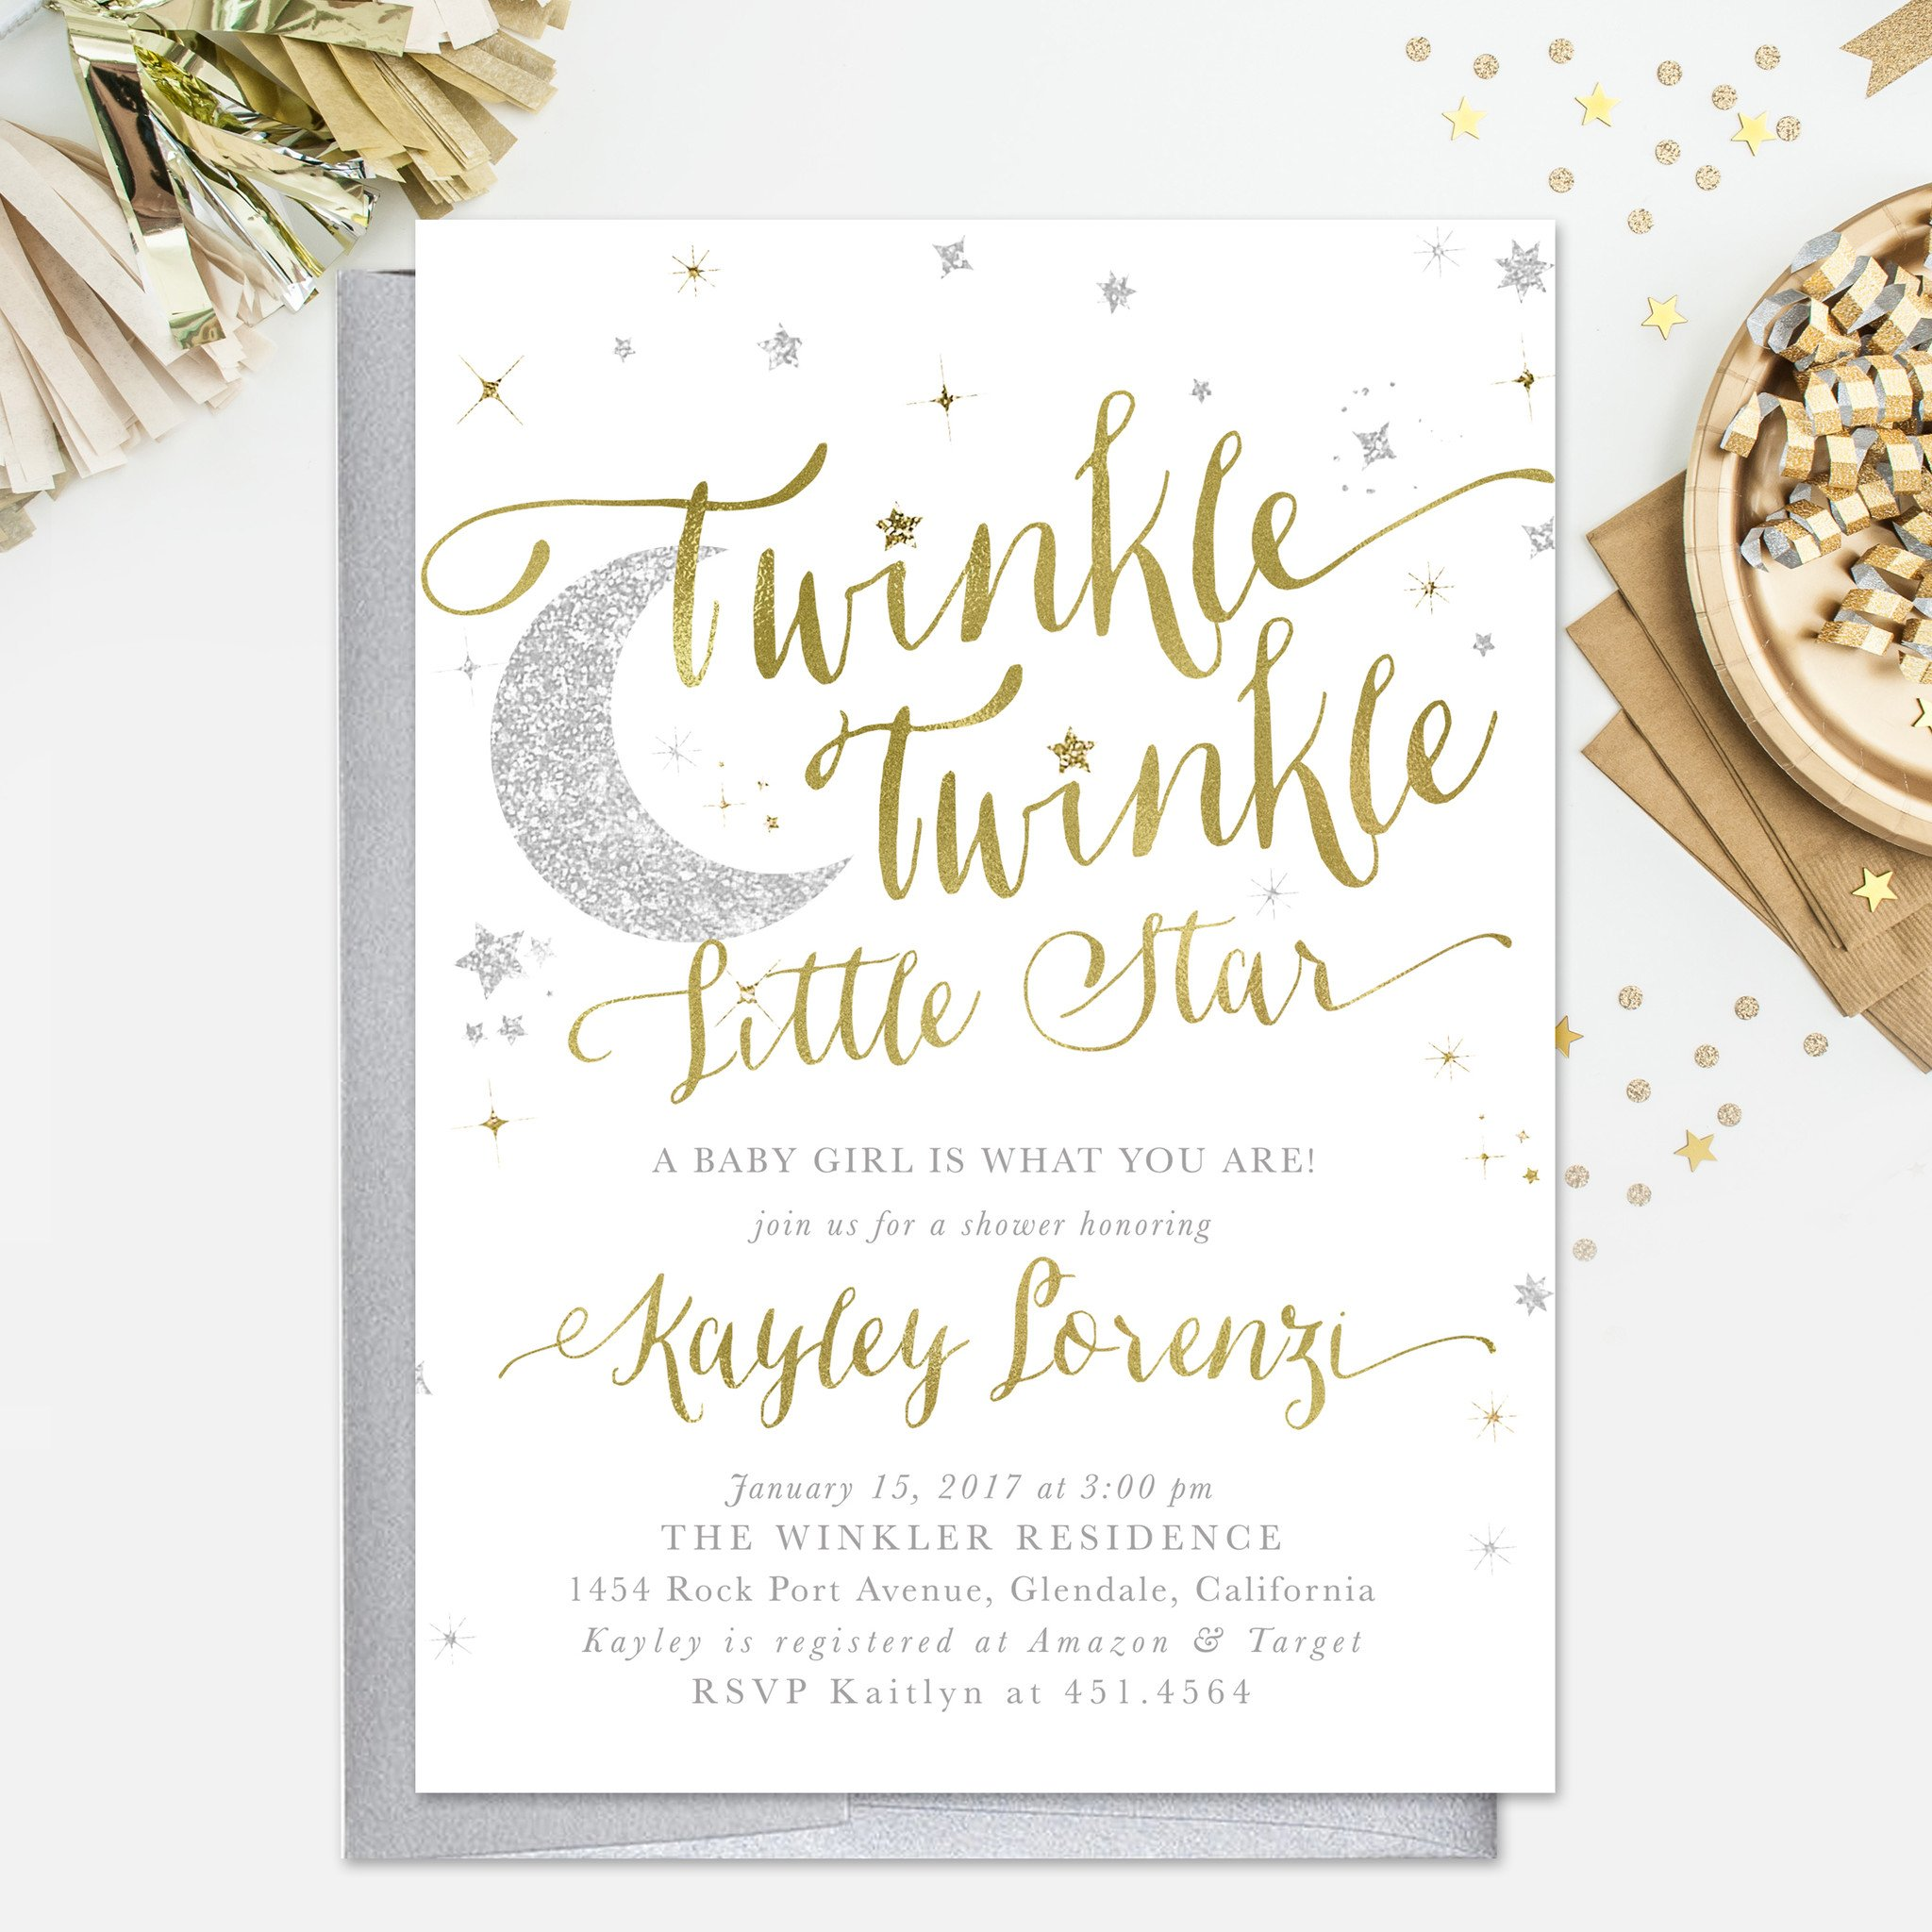 Full Size of Baby Shower:baby Shower Invitations Baby Shower Menu Homemade Baby Shower Decorations All Star Baby Shower Girl Baby Shower Plates